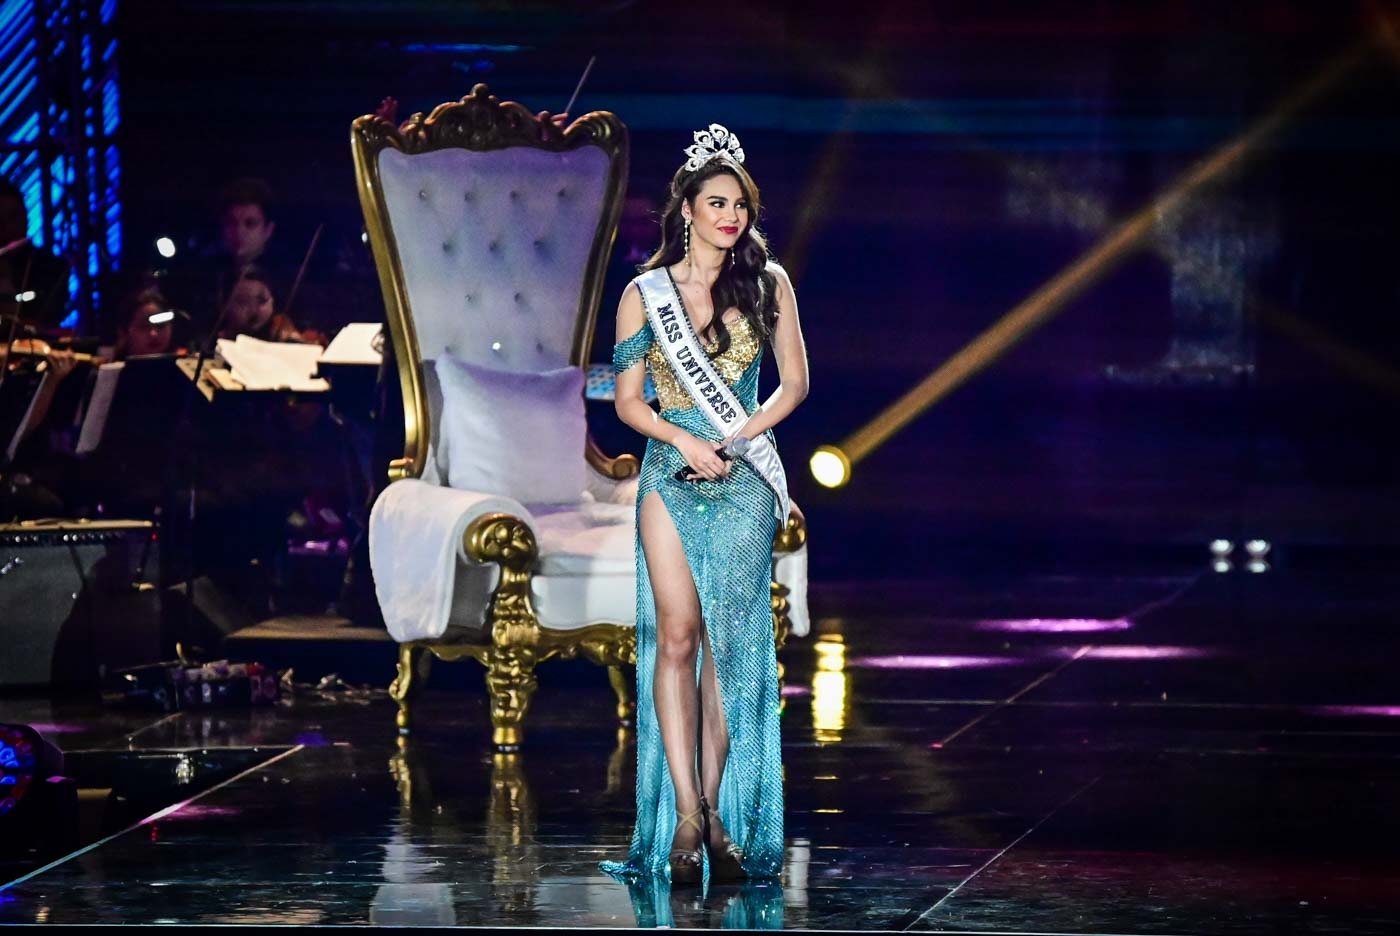 PERLA ORIENTE. Catriona Gray in another gown by Mak Tumang.